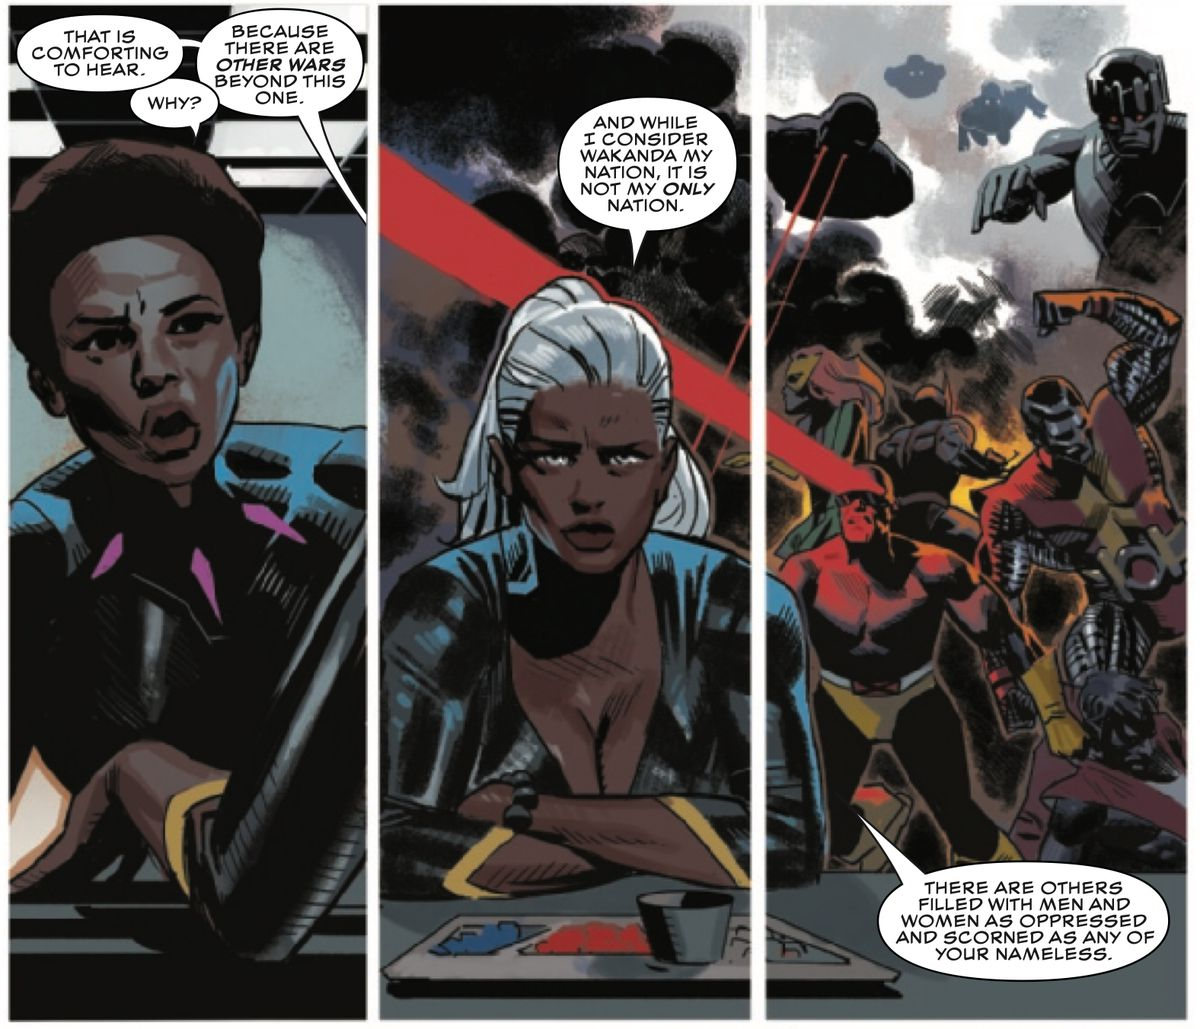 Storm explains to Nakia that Wakanda is her nation, but Krakoa is as well, in Black Panther #17, Marvel Comics (2019).